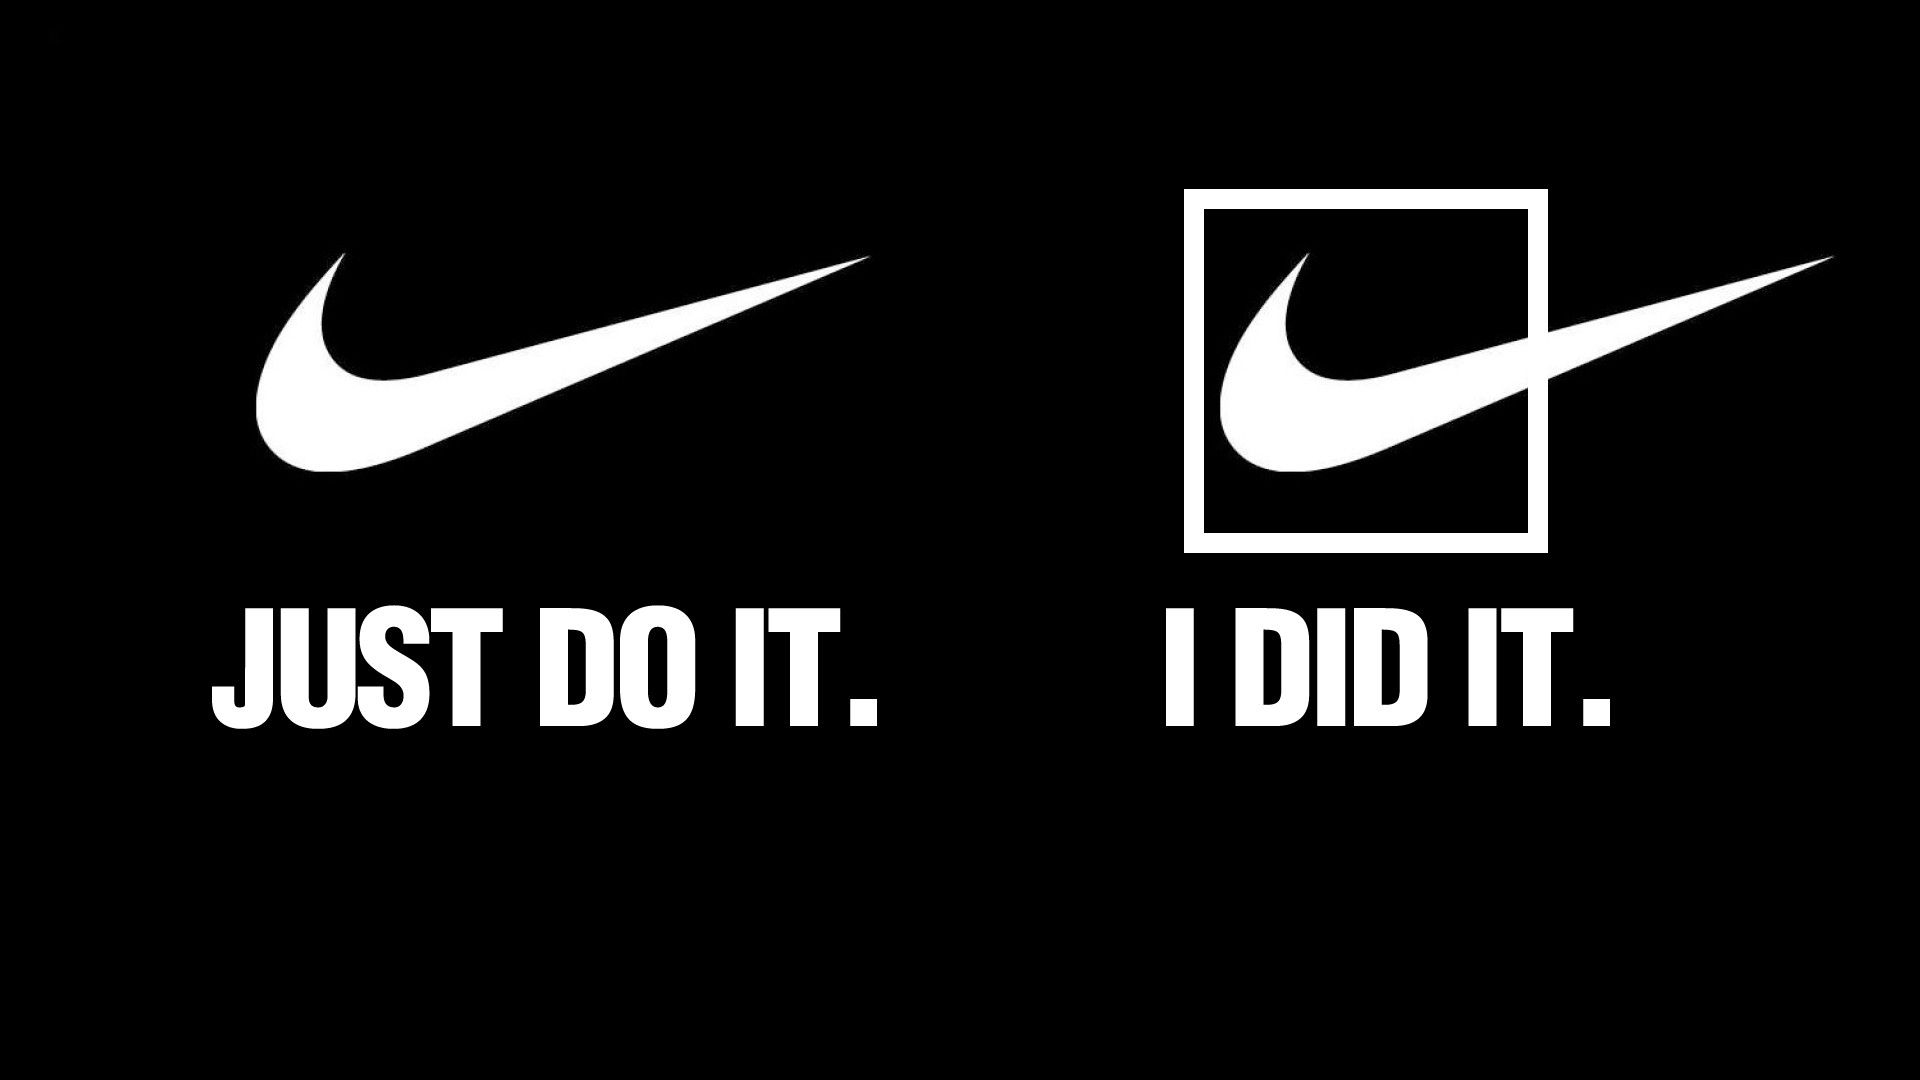 Nike Quotes Wallpaper Hd Basketball Hd Images 3 Hd Wallpapers